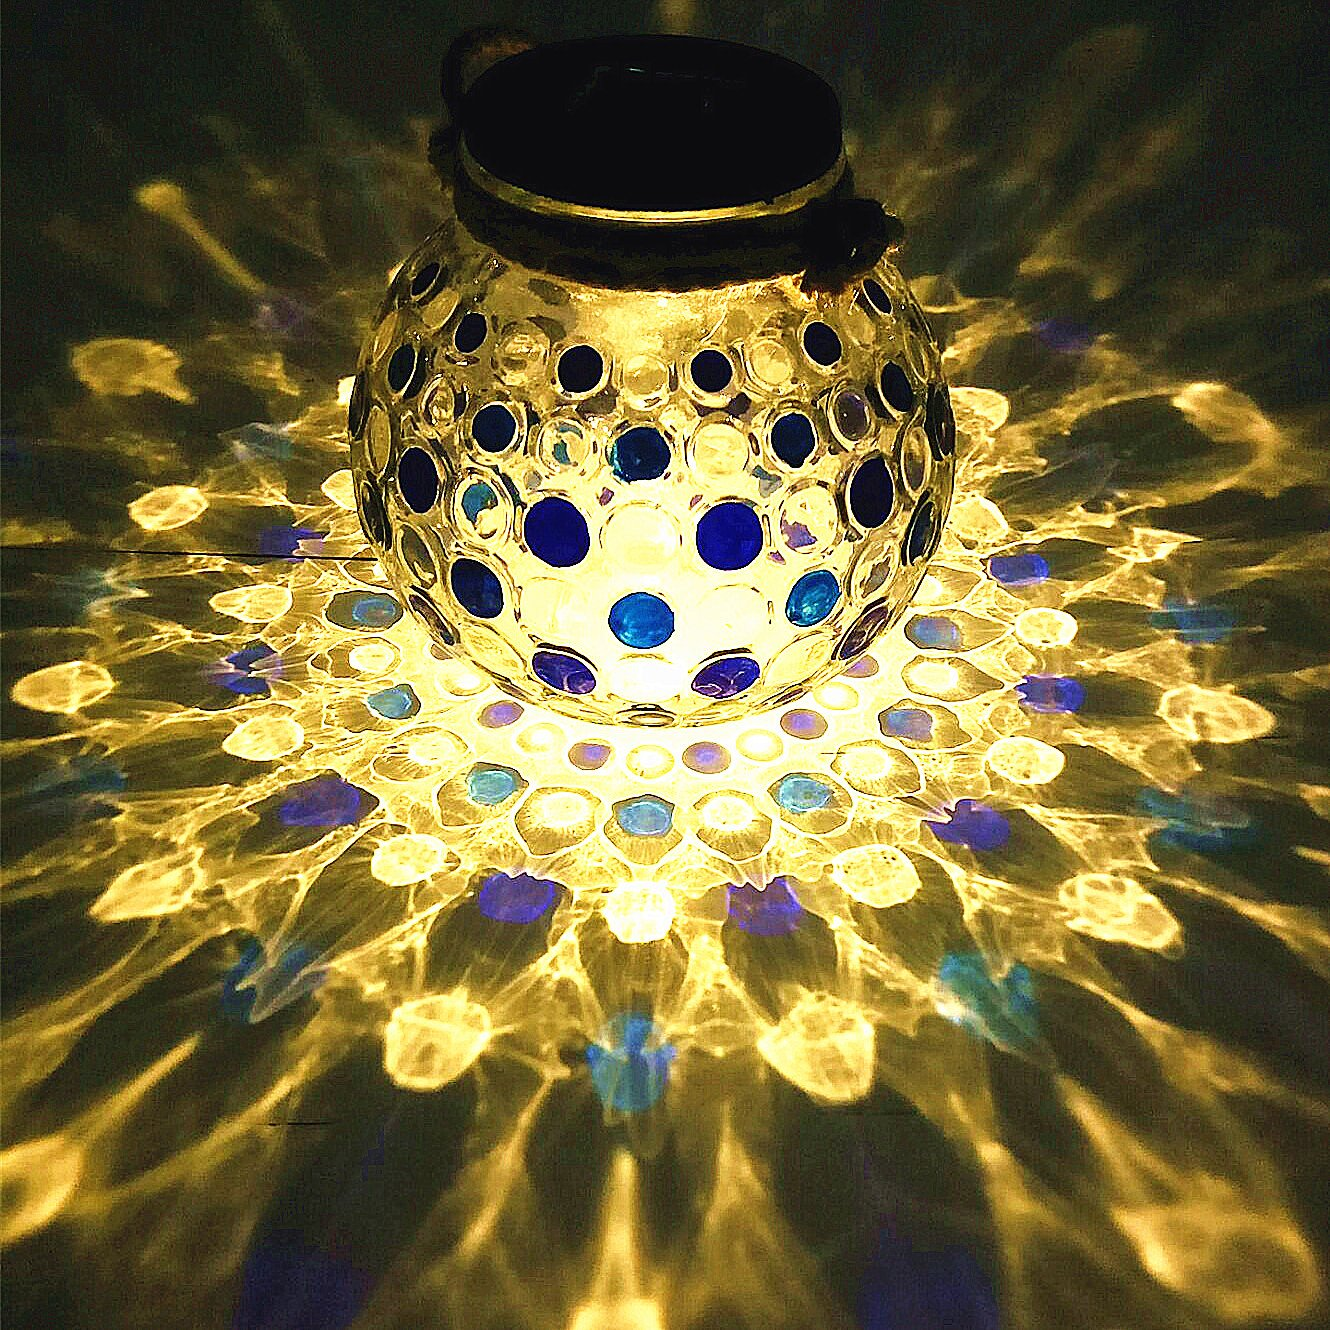 Sogrand Solar Jar Lights Outdoor Lids for Mason Jars Blue Dot Hanging Lantern Home Decor 2018 of The Day Warm White LED Rope Hanger Light Lid Decorative Lamp for Patio Garden Bar Party